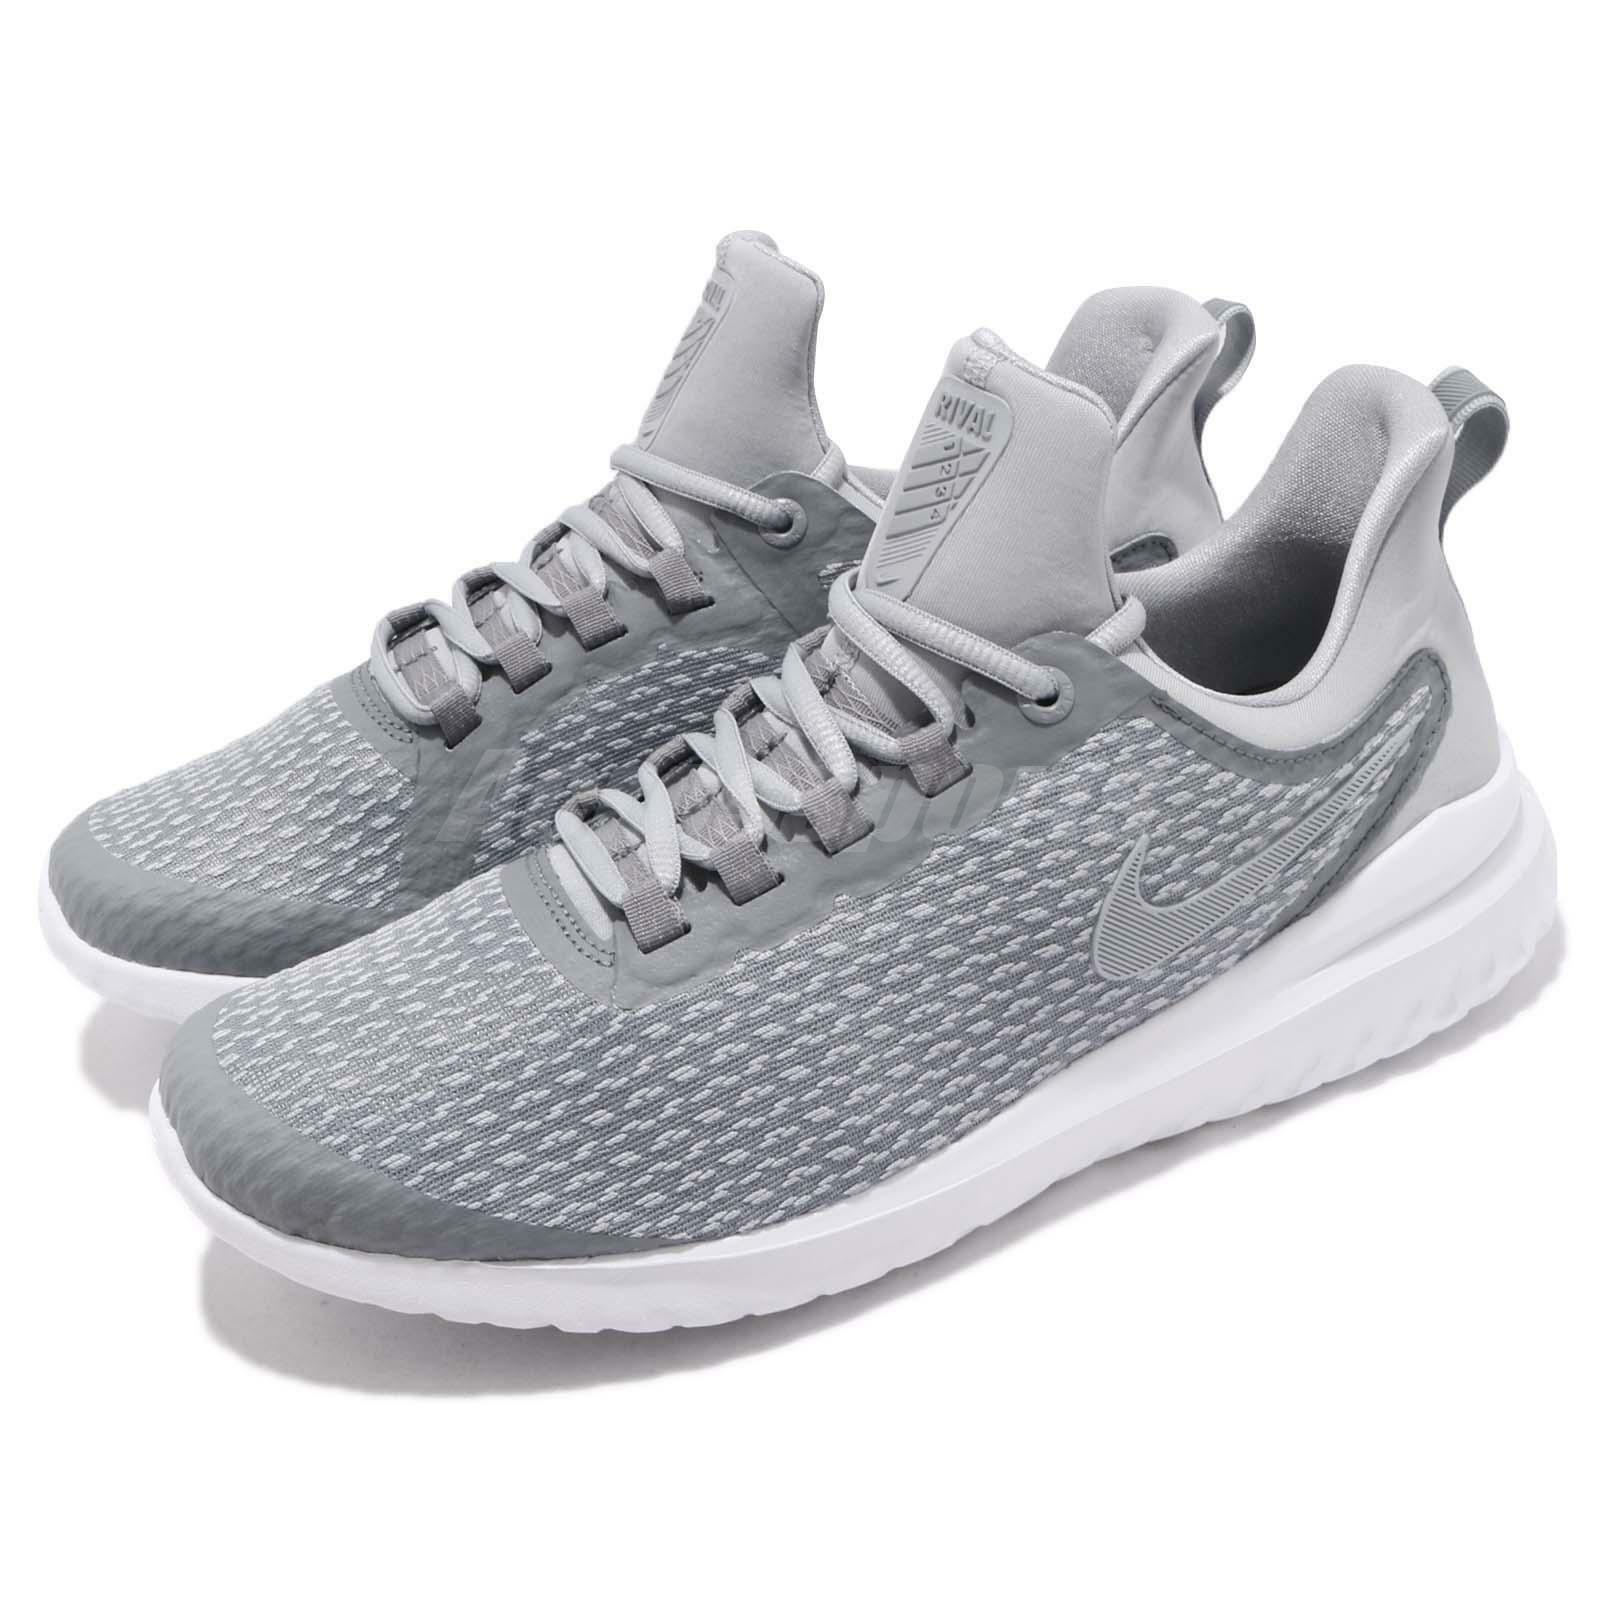 Nike Renew Rival Stealth  Gris  blanc homme fonctionnement Casual chaussures Sneakers AA7400-006